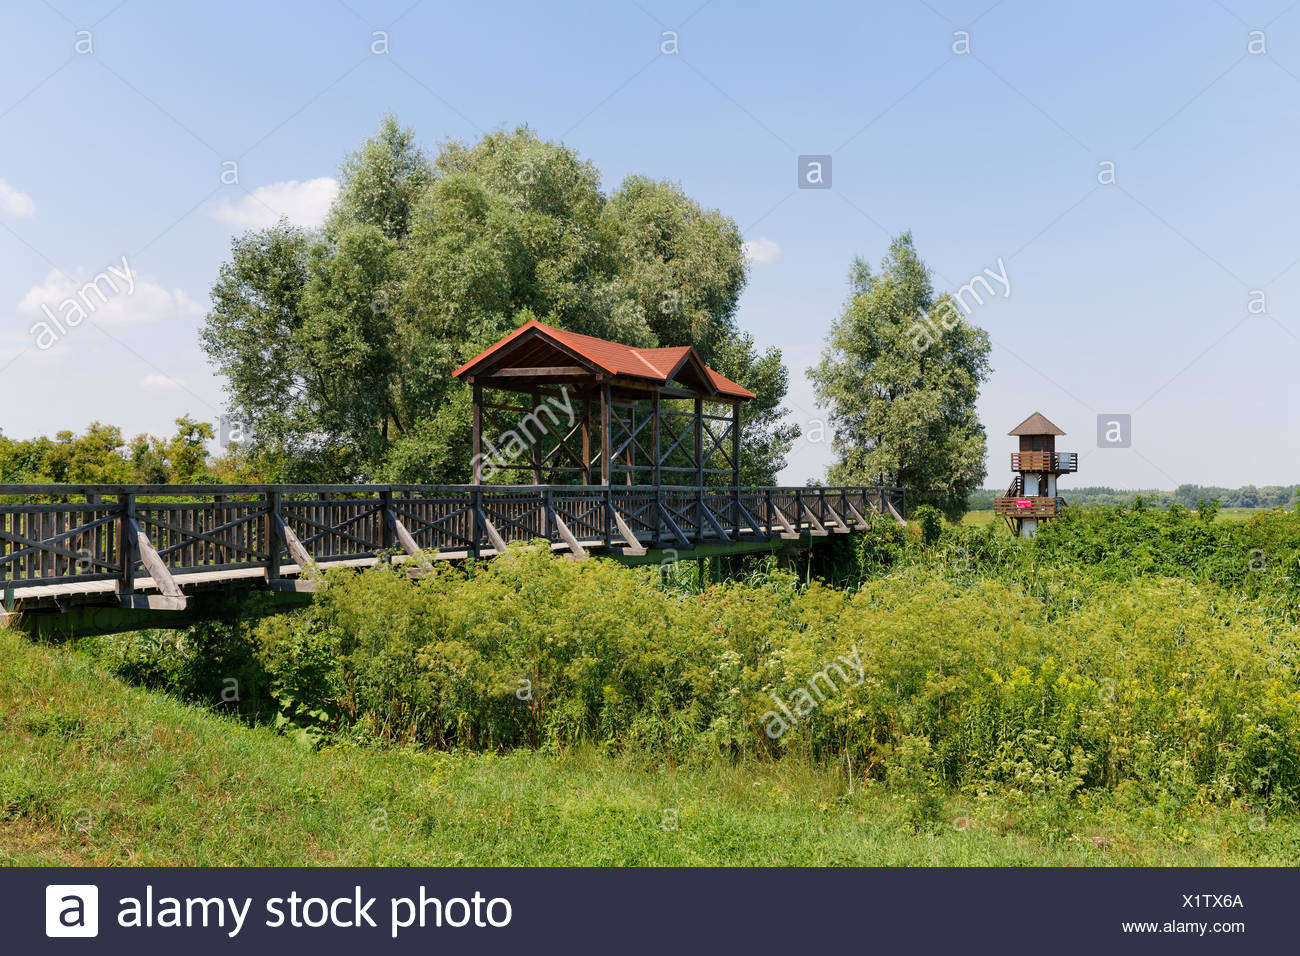 Andau bridge over the Einser-Kanal canal, Andau, Seewinkel, state border to Hungary, Northern Burgenland, Burgenland, Austria - Stock Image